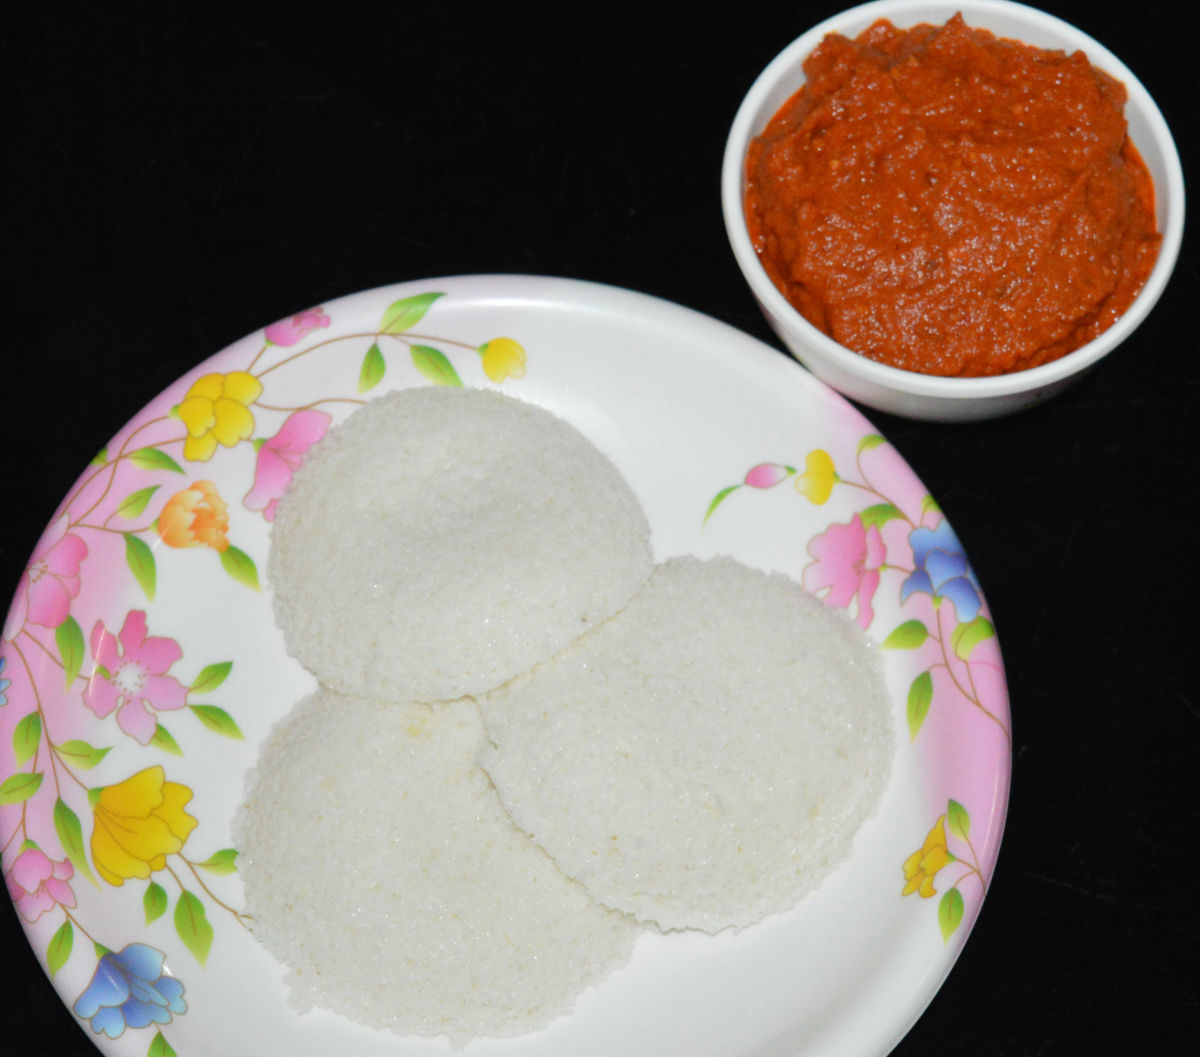 Serve this tomato lentil chutney with idli, dosa, or steamed rice. Enjoy the taste.